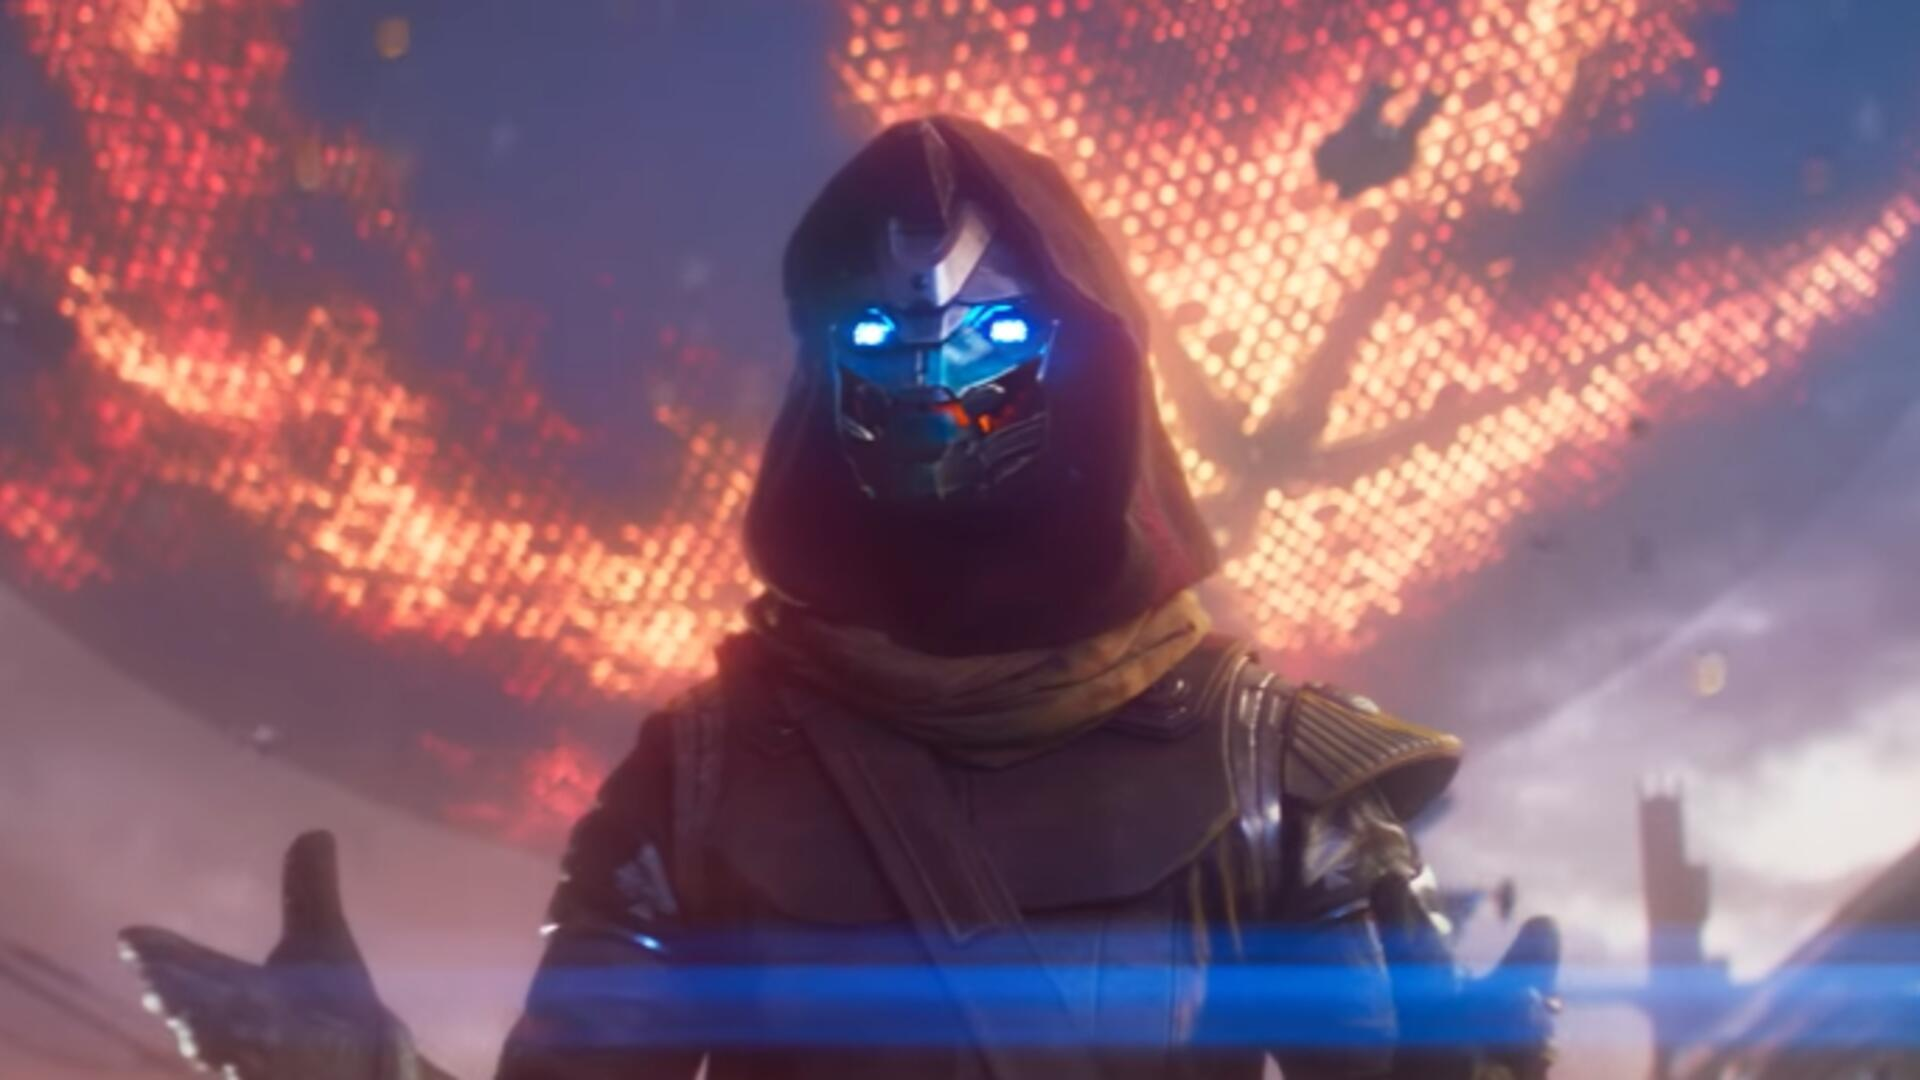 Metal Gear Solid Movie Director Made an Awesome Live-Action Destiny 2 Trailer